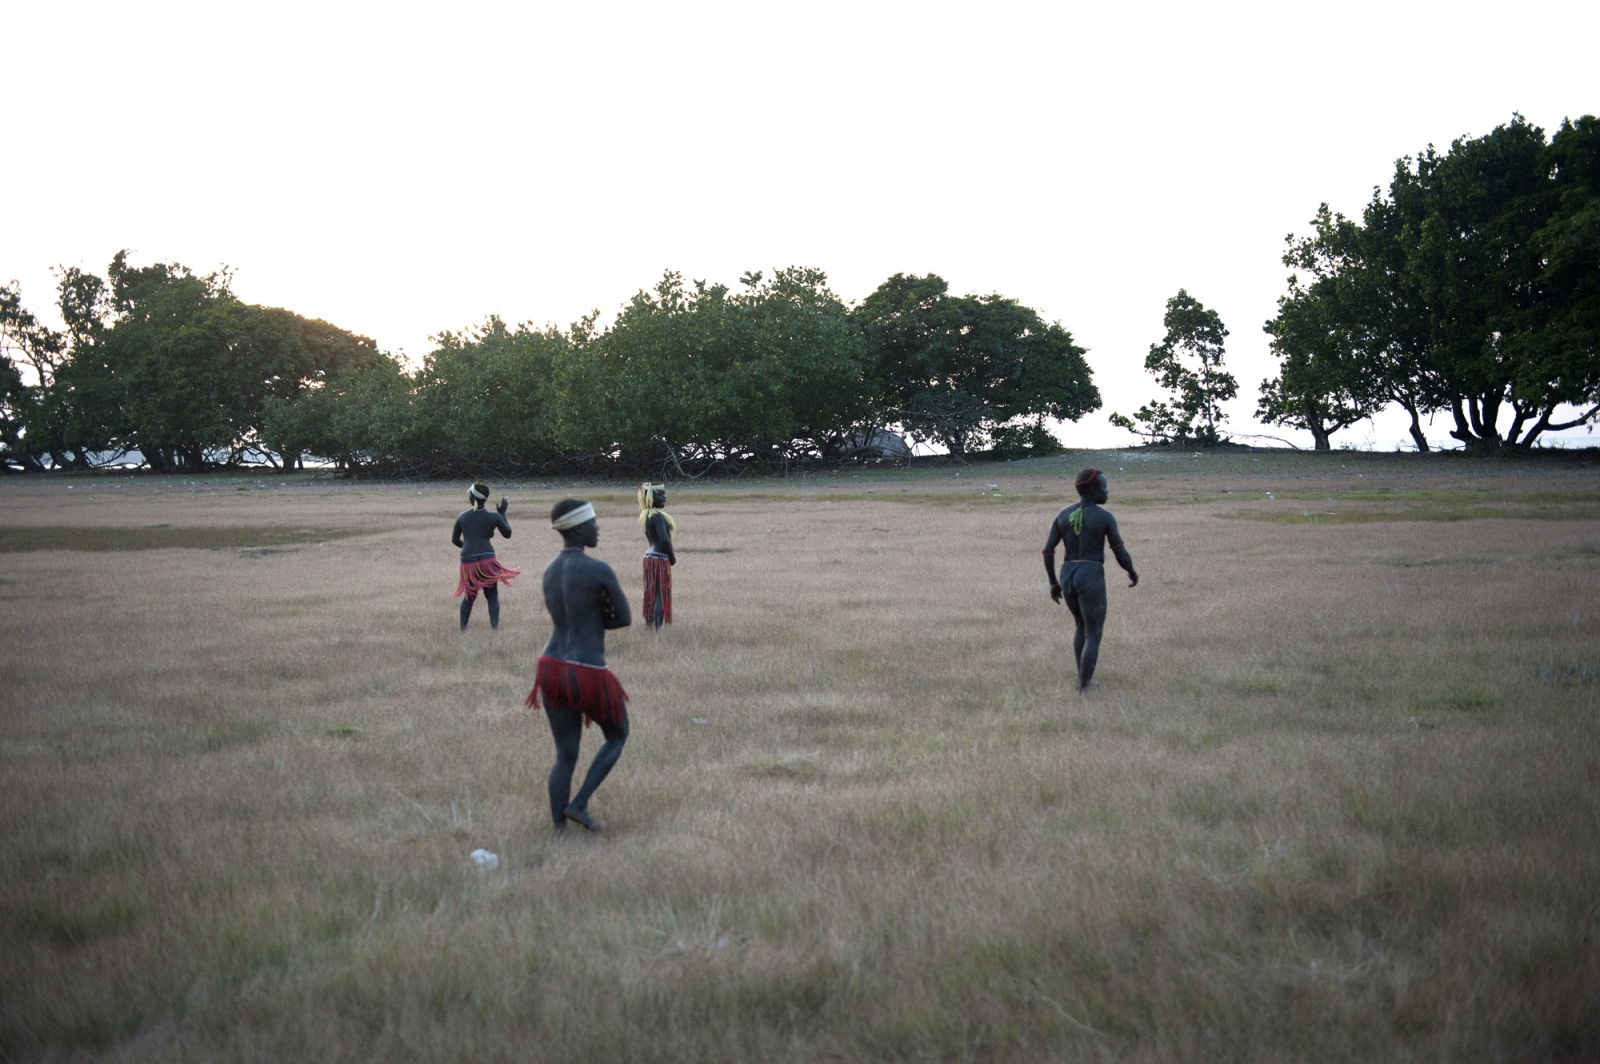 Art and Documentary Photography - Loading jarawa_beilvert_jarawa_walking_in_a_grass_field.jpg